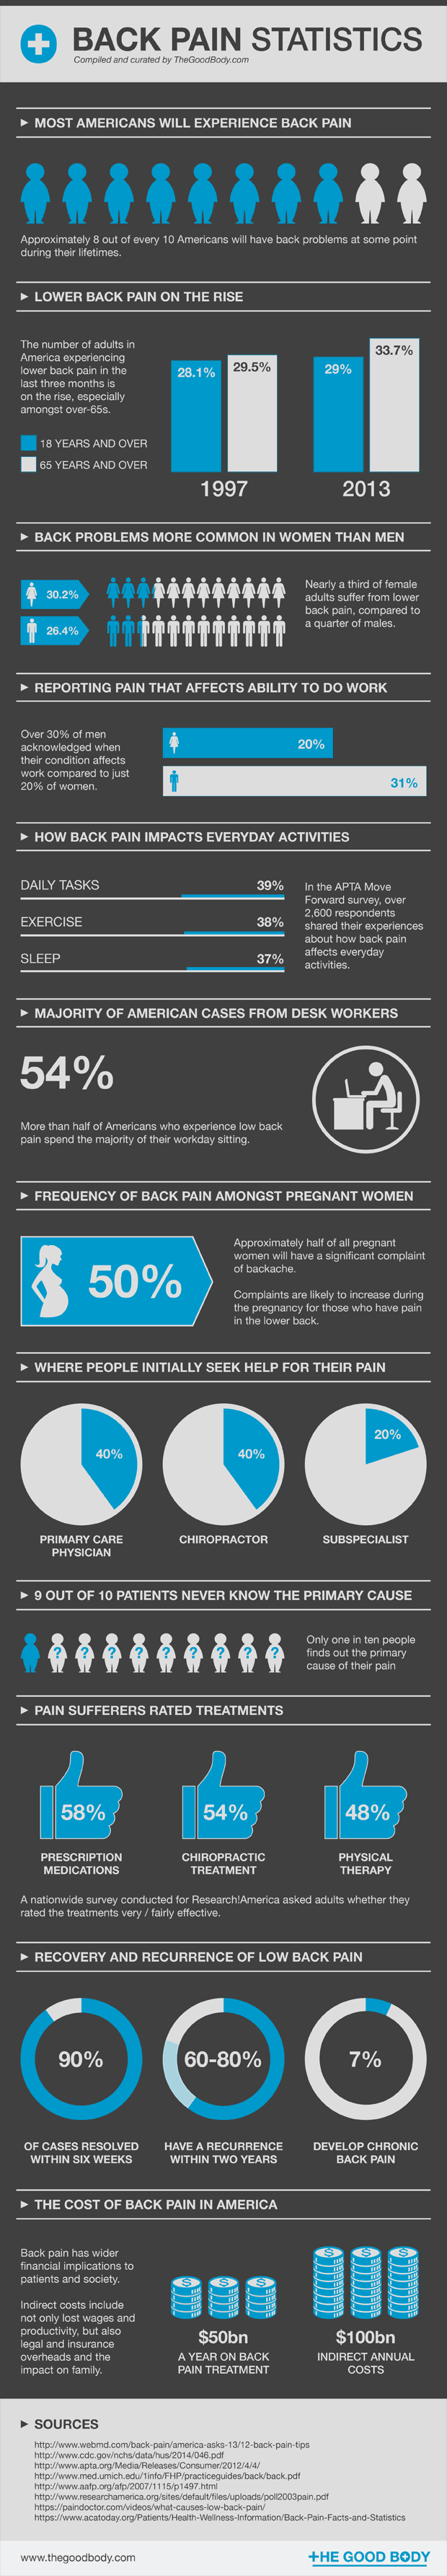 back-pain-statistics-infographic (1)